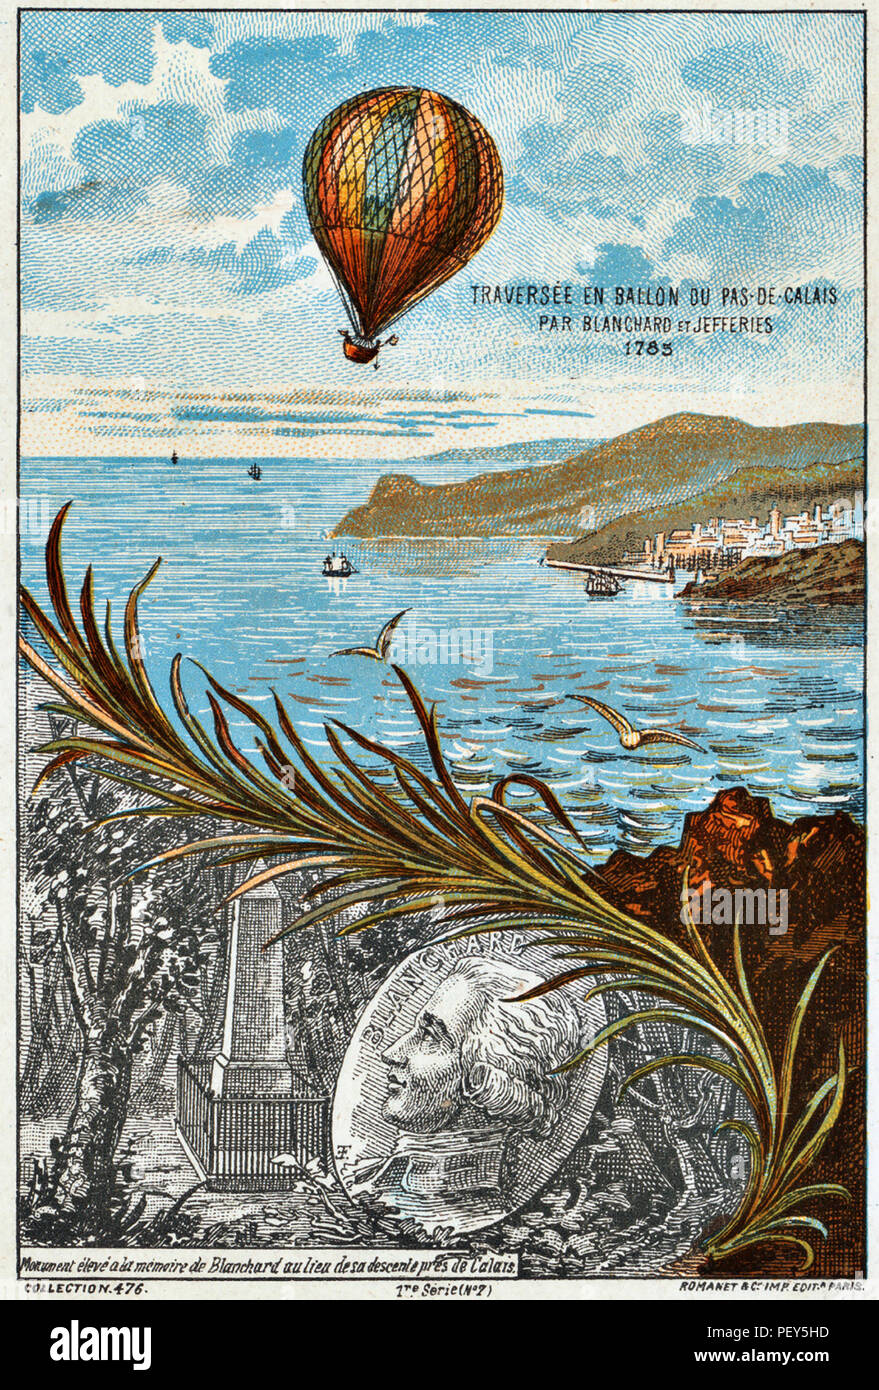 JEAN-PIERRE BLANCHARD a French balloonist and an American John Jeffries crossing the English Channel on 7 January 1785 as shown on a French postcard. Stock Photo